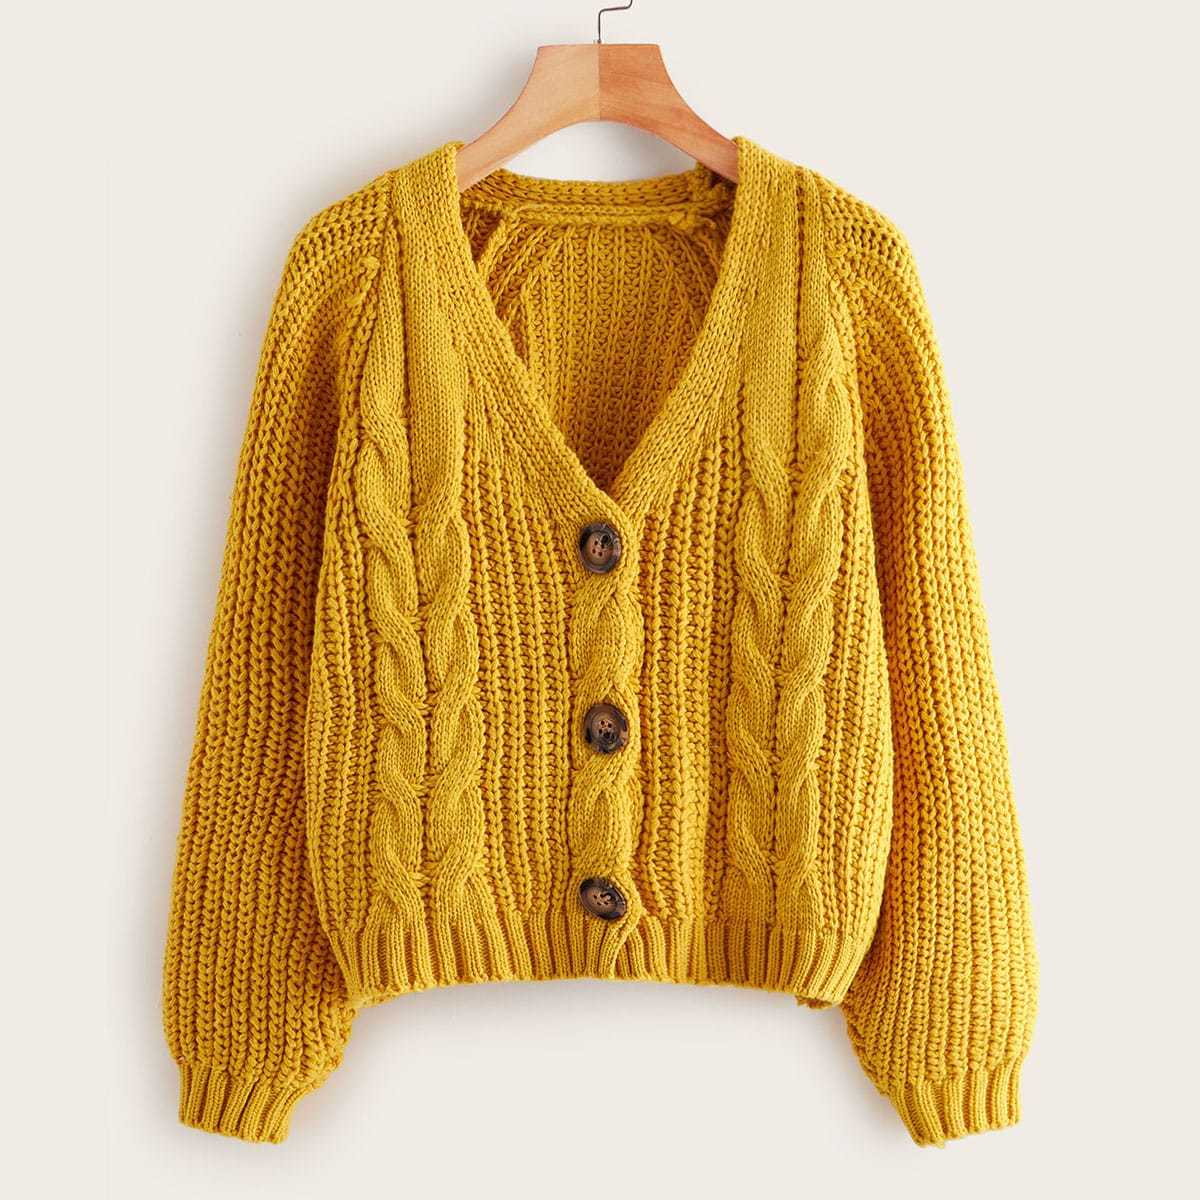 Cable Knit Button Through Solid Cardigan in Yellow by ROMWE on GOOFASH